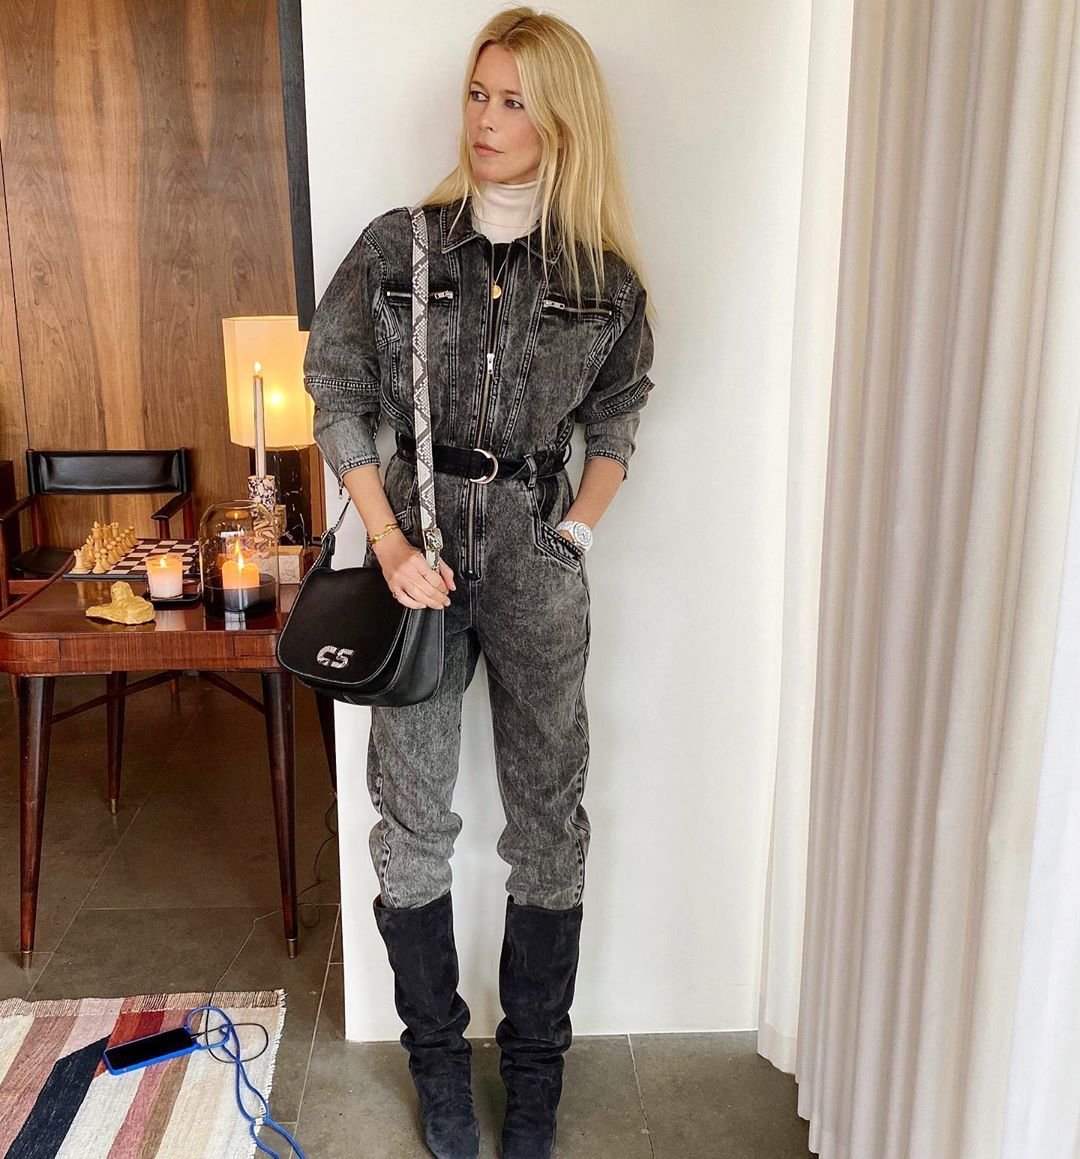 Claudia Schiffer On Instagram Monochrome Goodness Love My New Coach Bag Ootd Fashion Claudia Schiffer Outfits